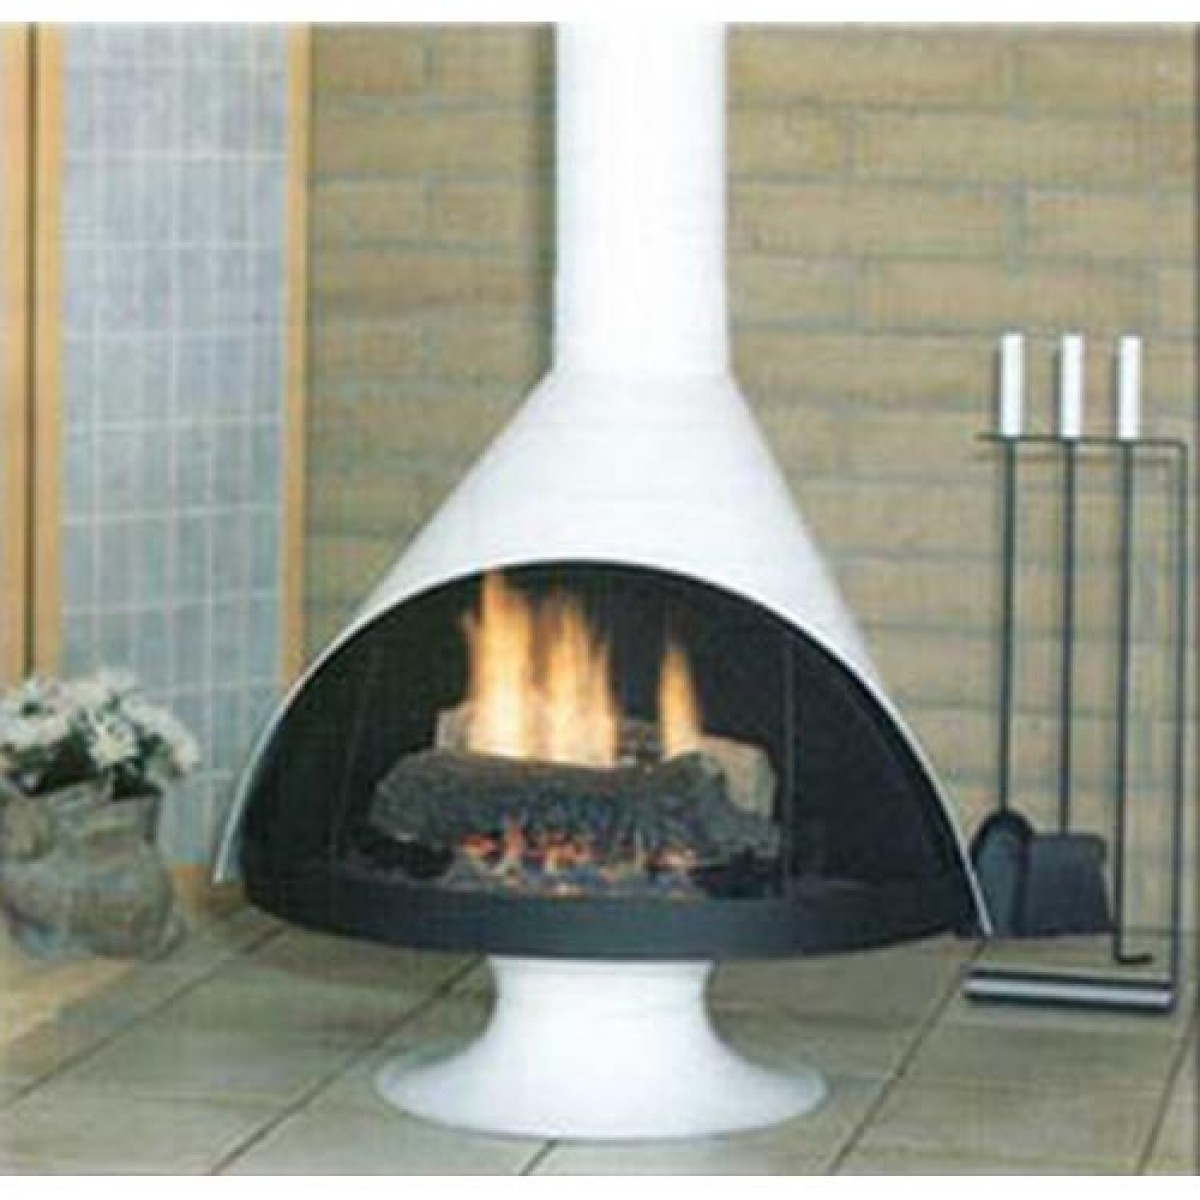 fireplaces malm fireplace and garden patios pin outside pinterest home